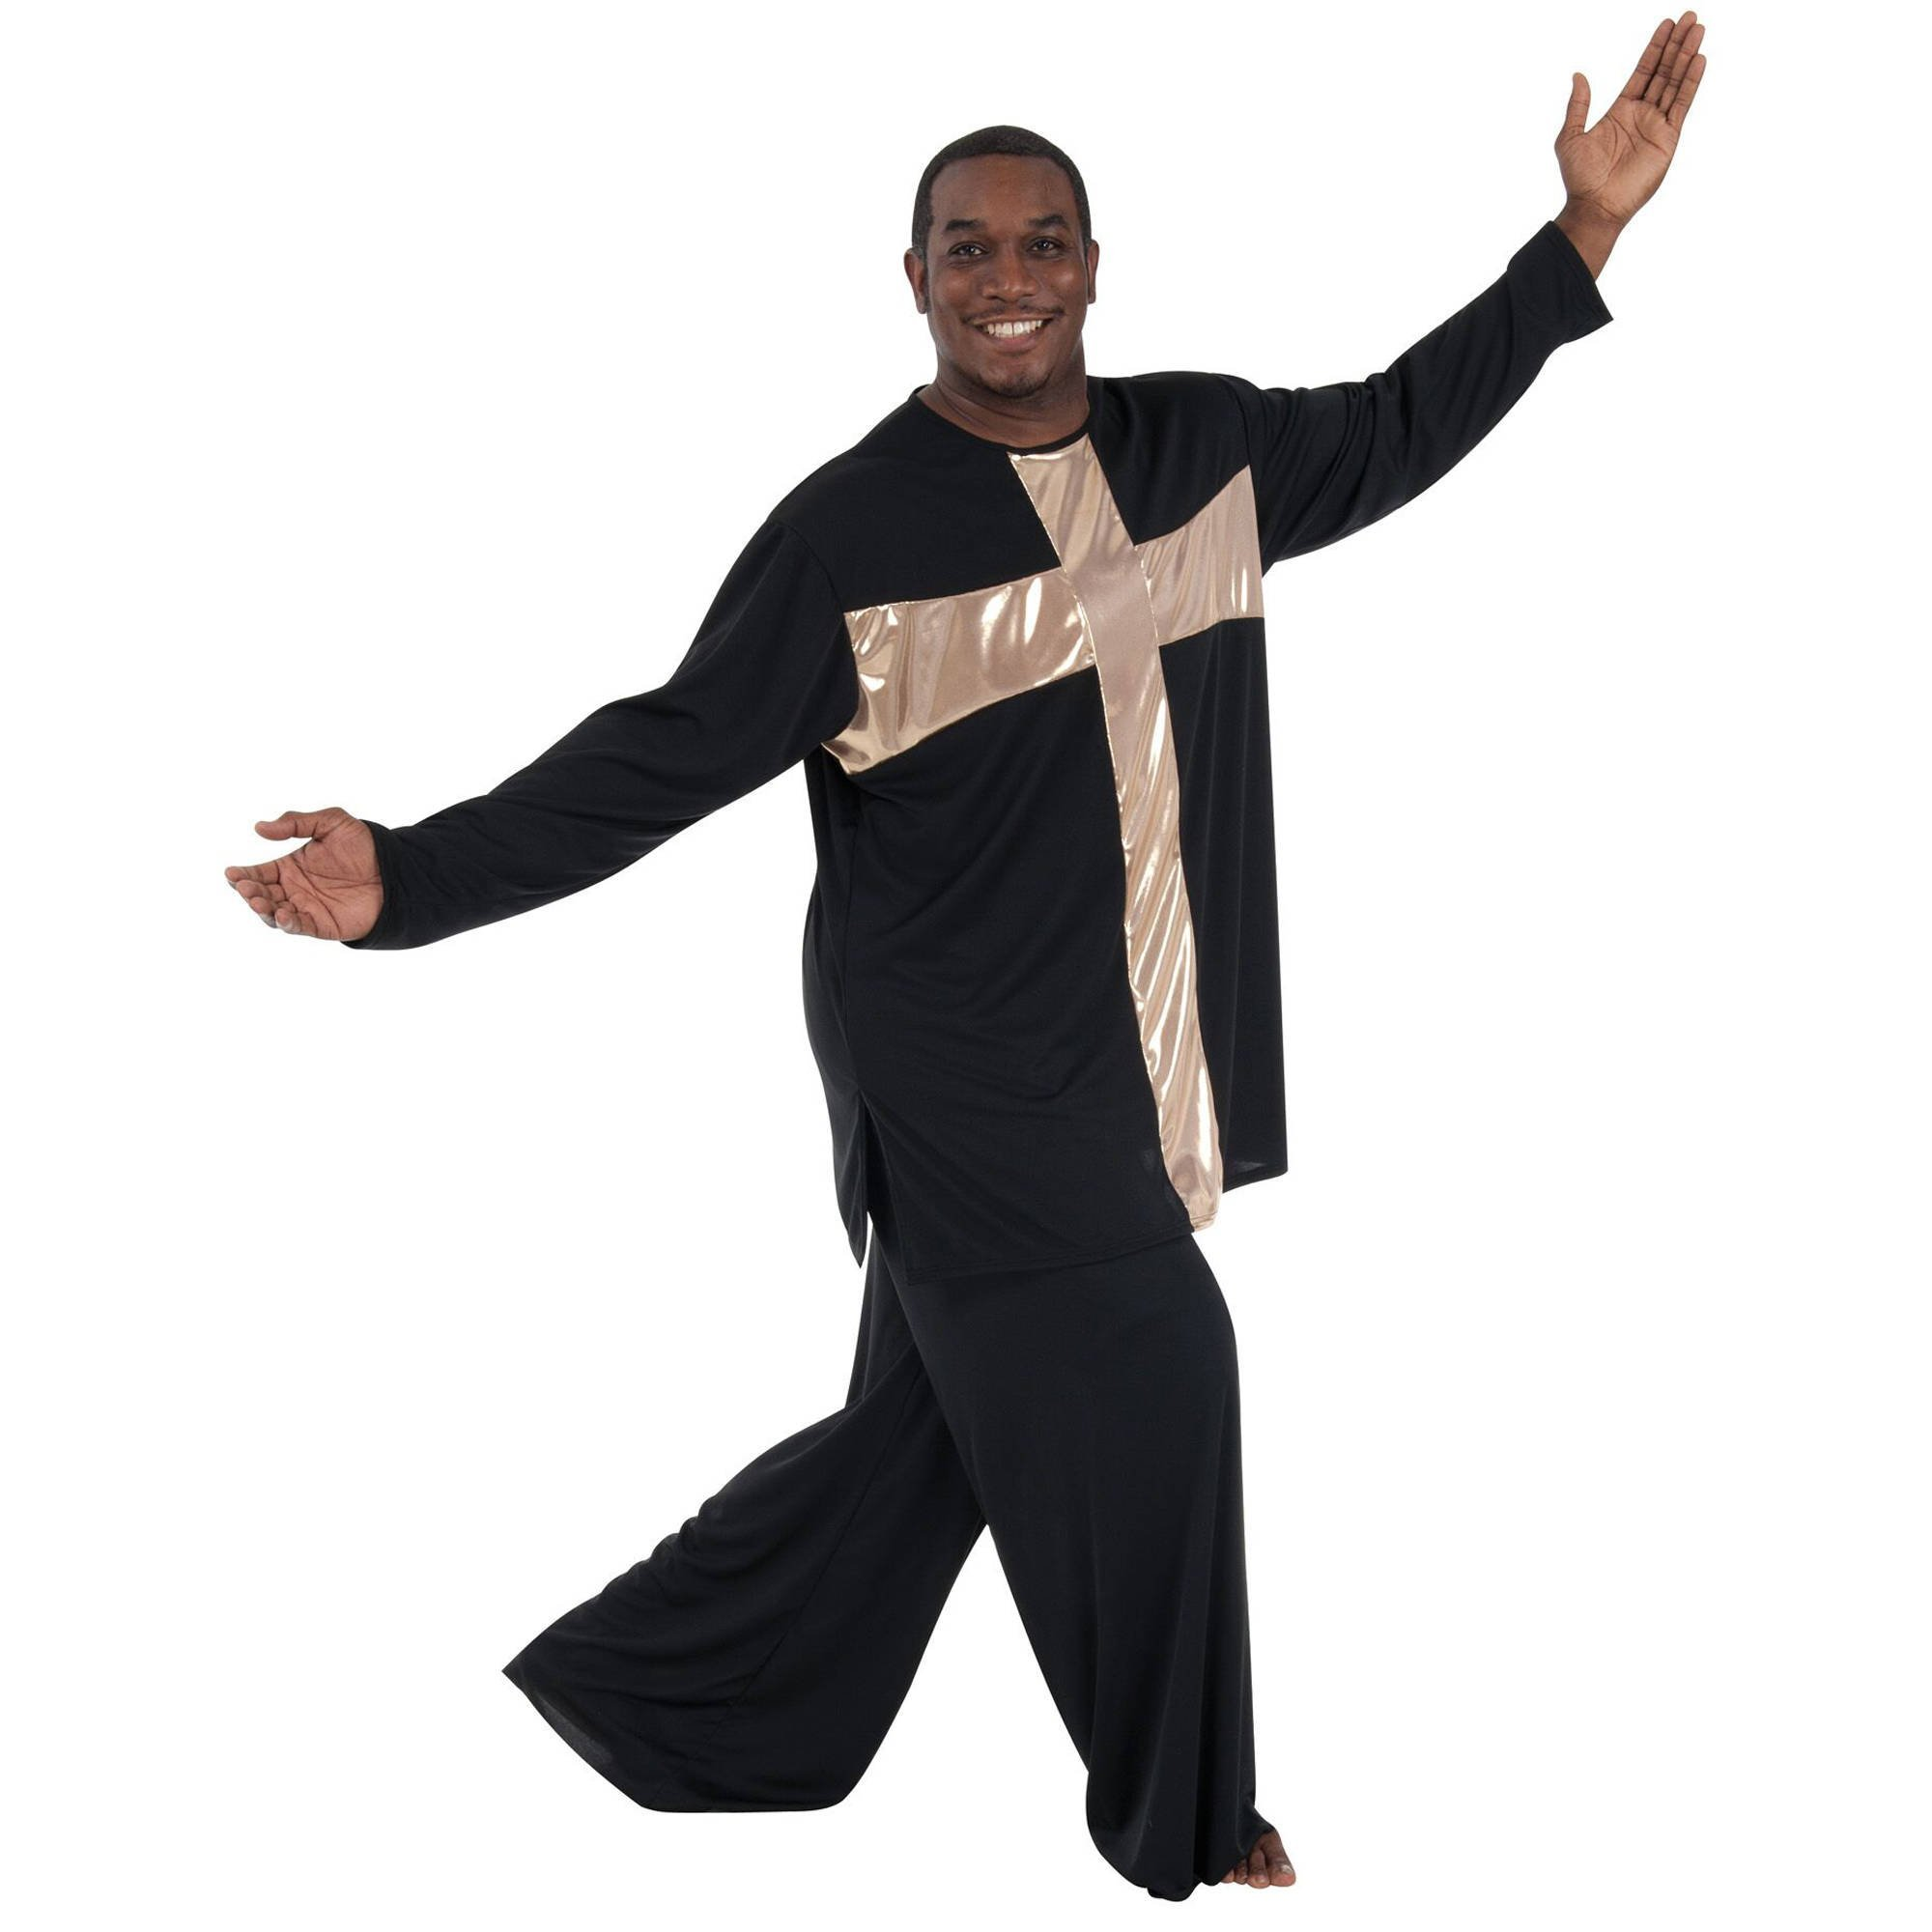 Praise Cross Male Inspired Pullover (pants not included)